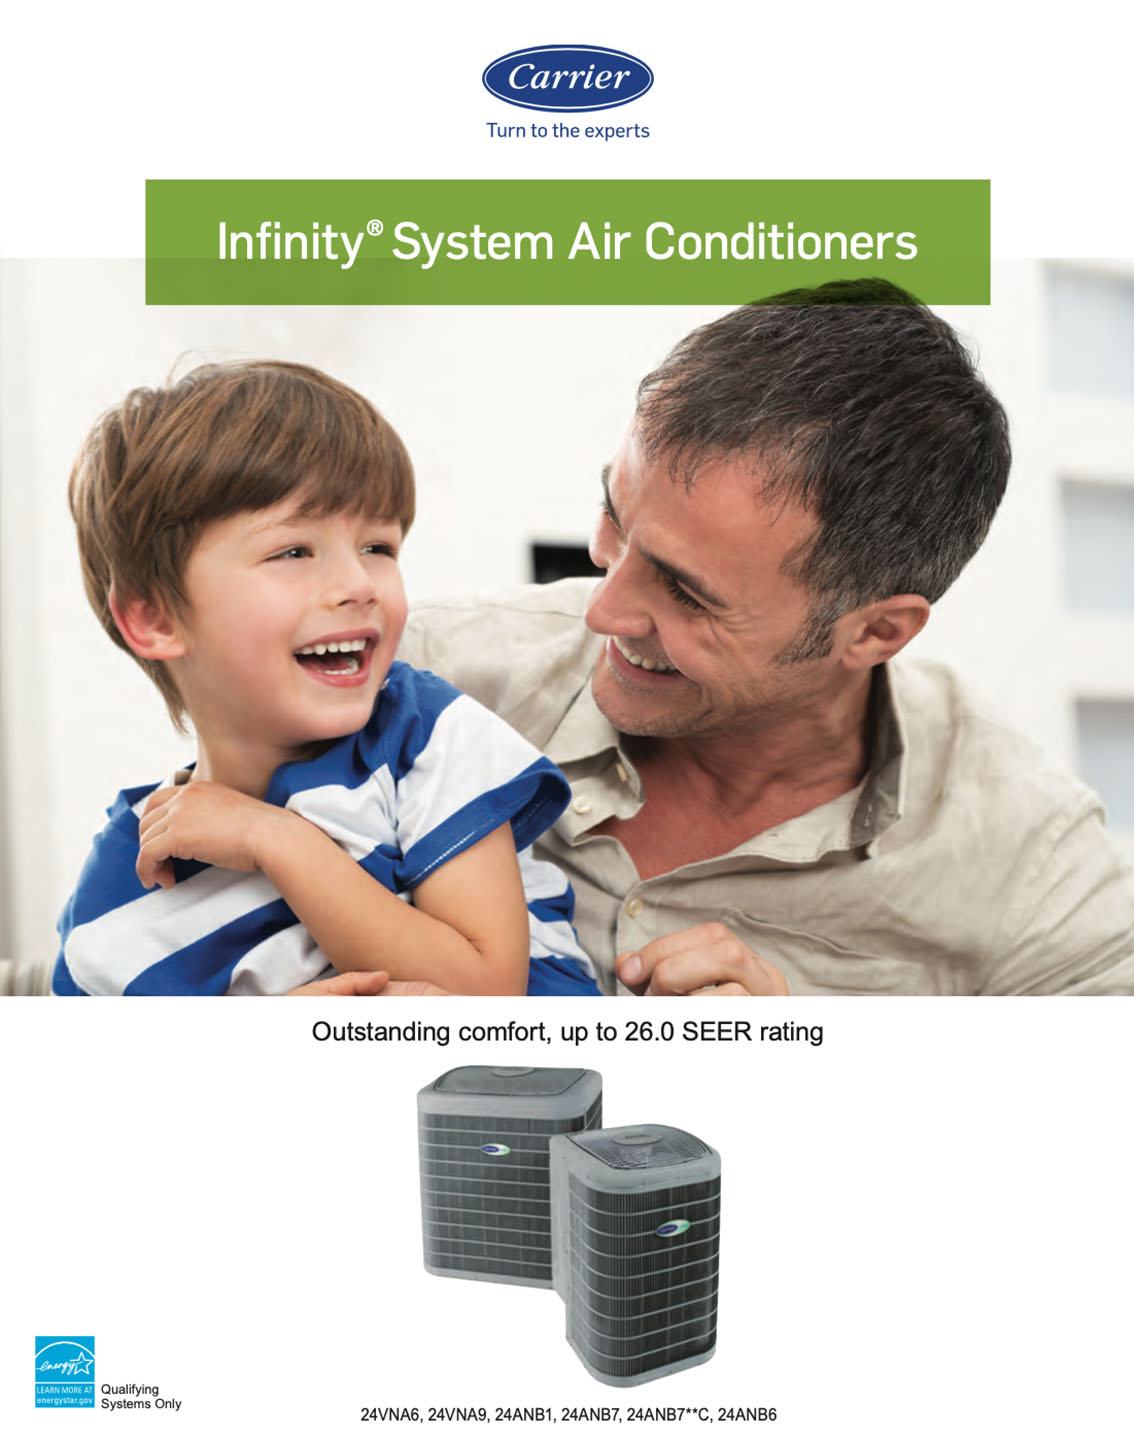 Carrier Infinity Air Conditioning